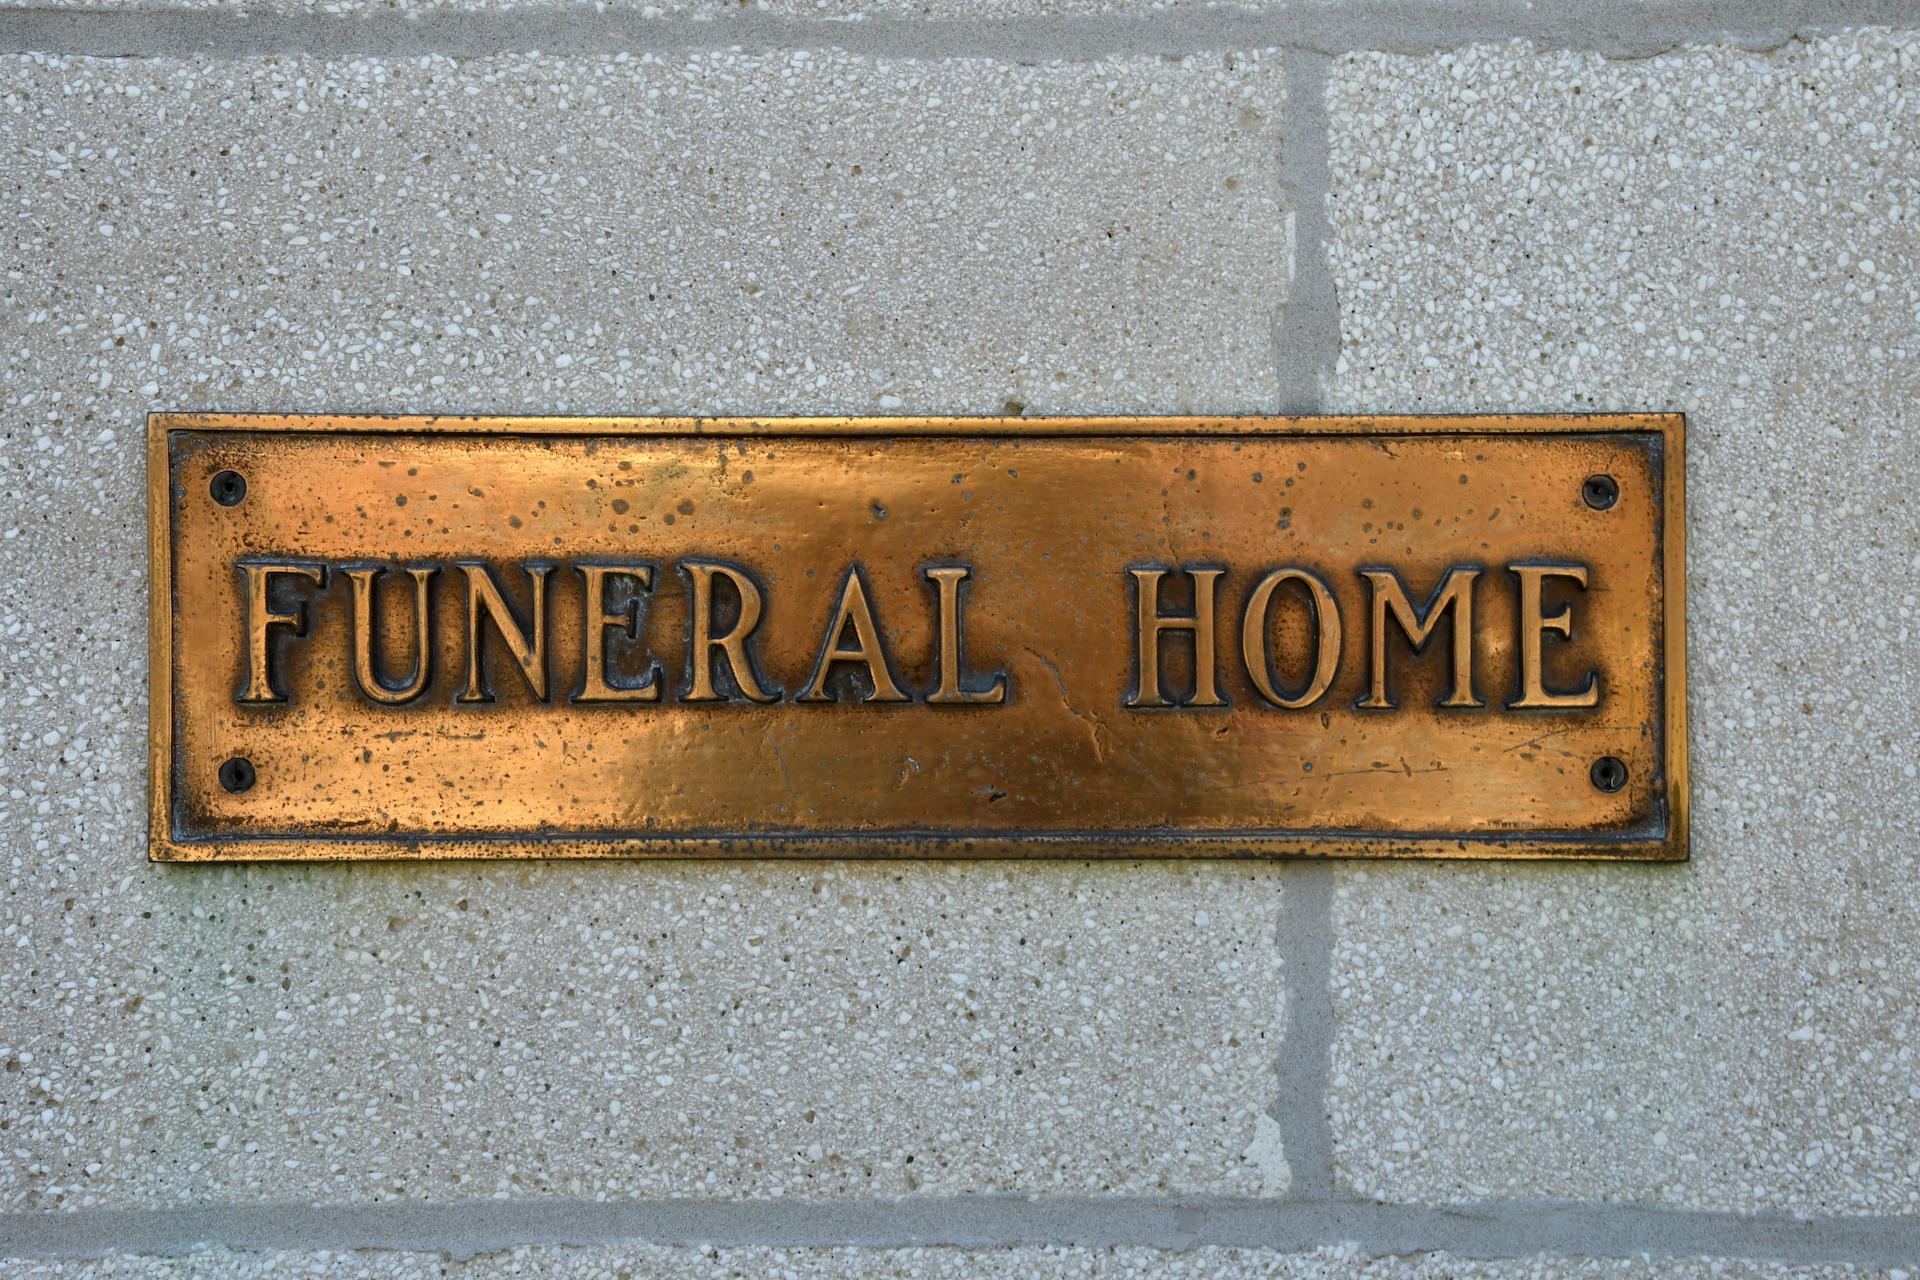 funeral home sign - Personal Injury Attorney in Nashville - Wrongful Death Attorney, Truck Accident Lawyer, Car Accident Lawyer, and more | Meyers Injury Law